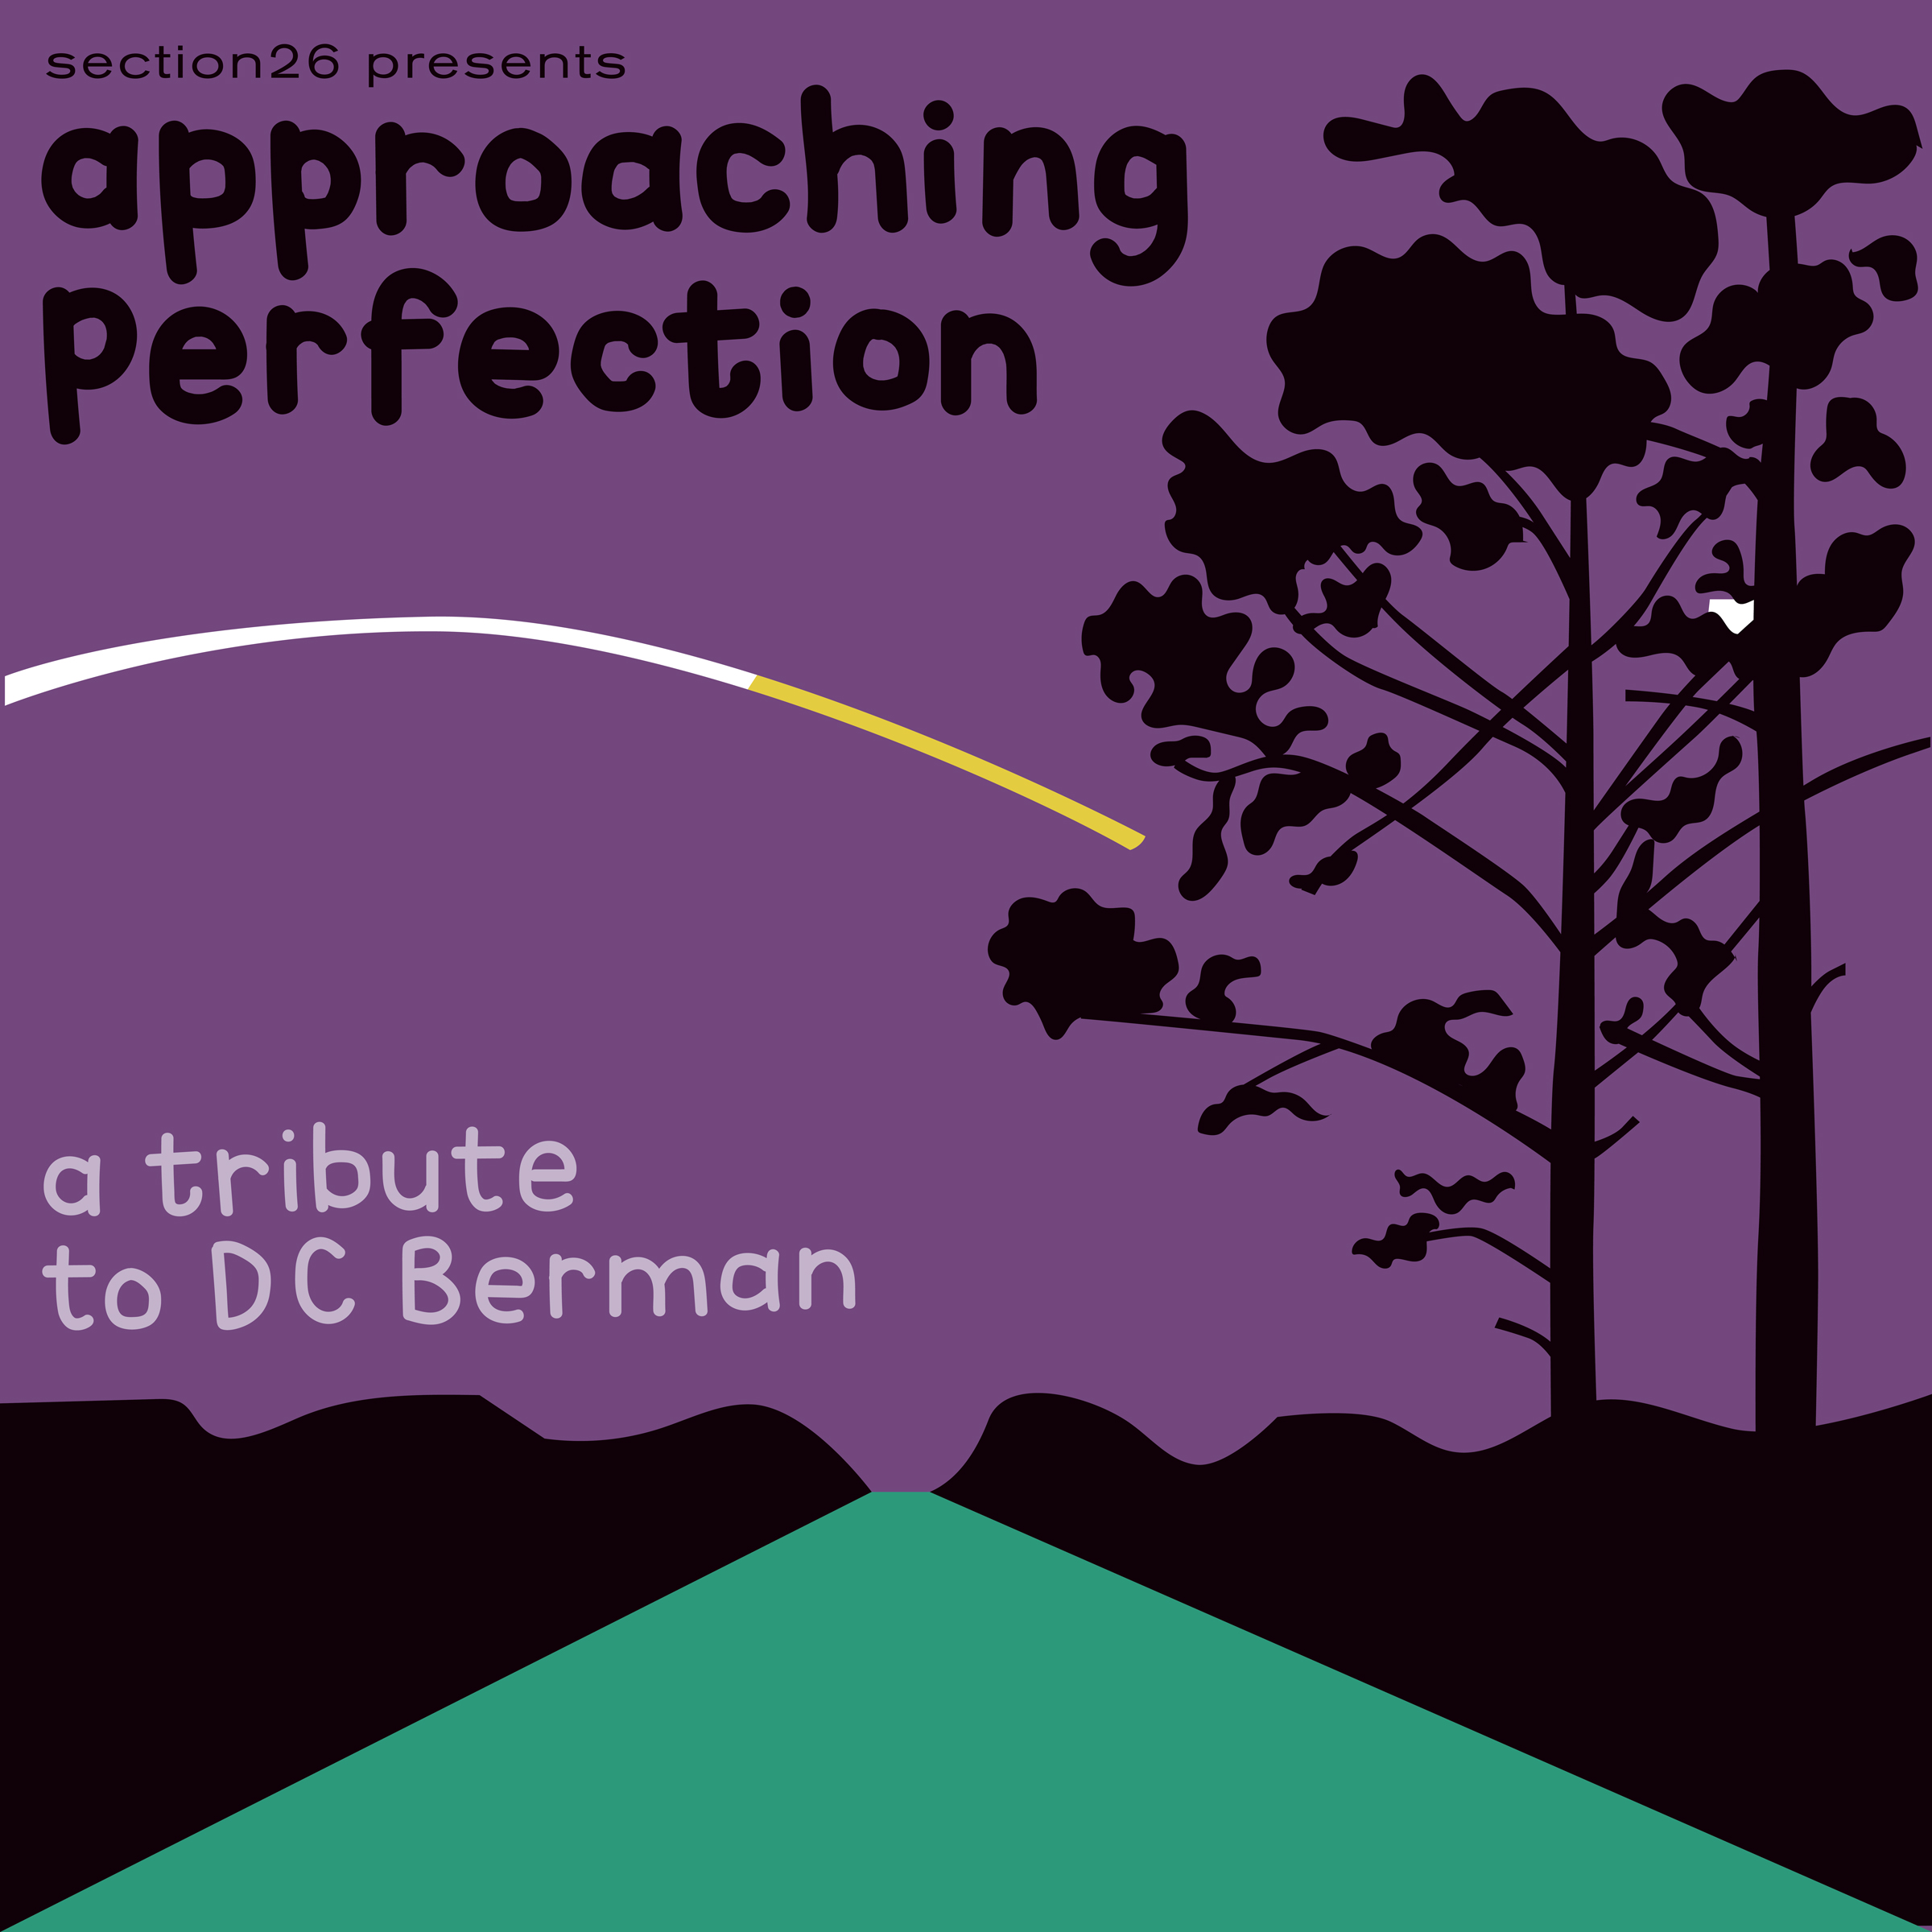 Approaching perfection a tribute to DC Berman